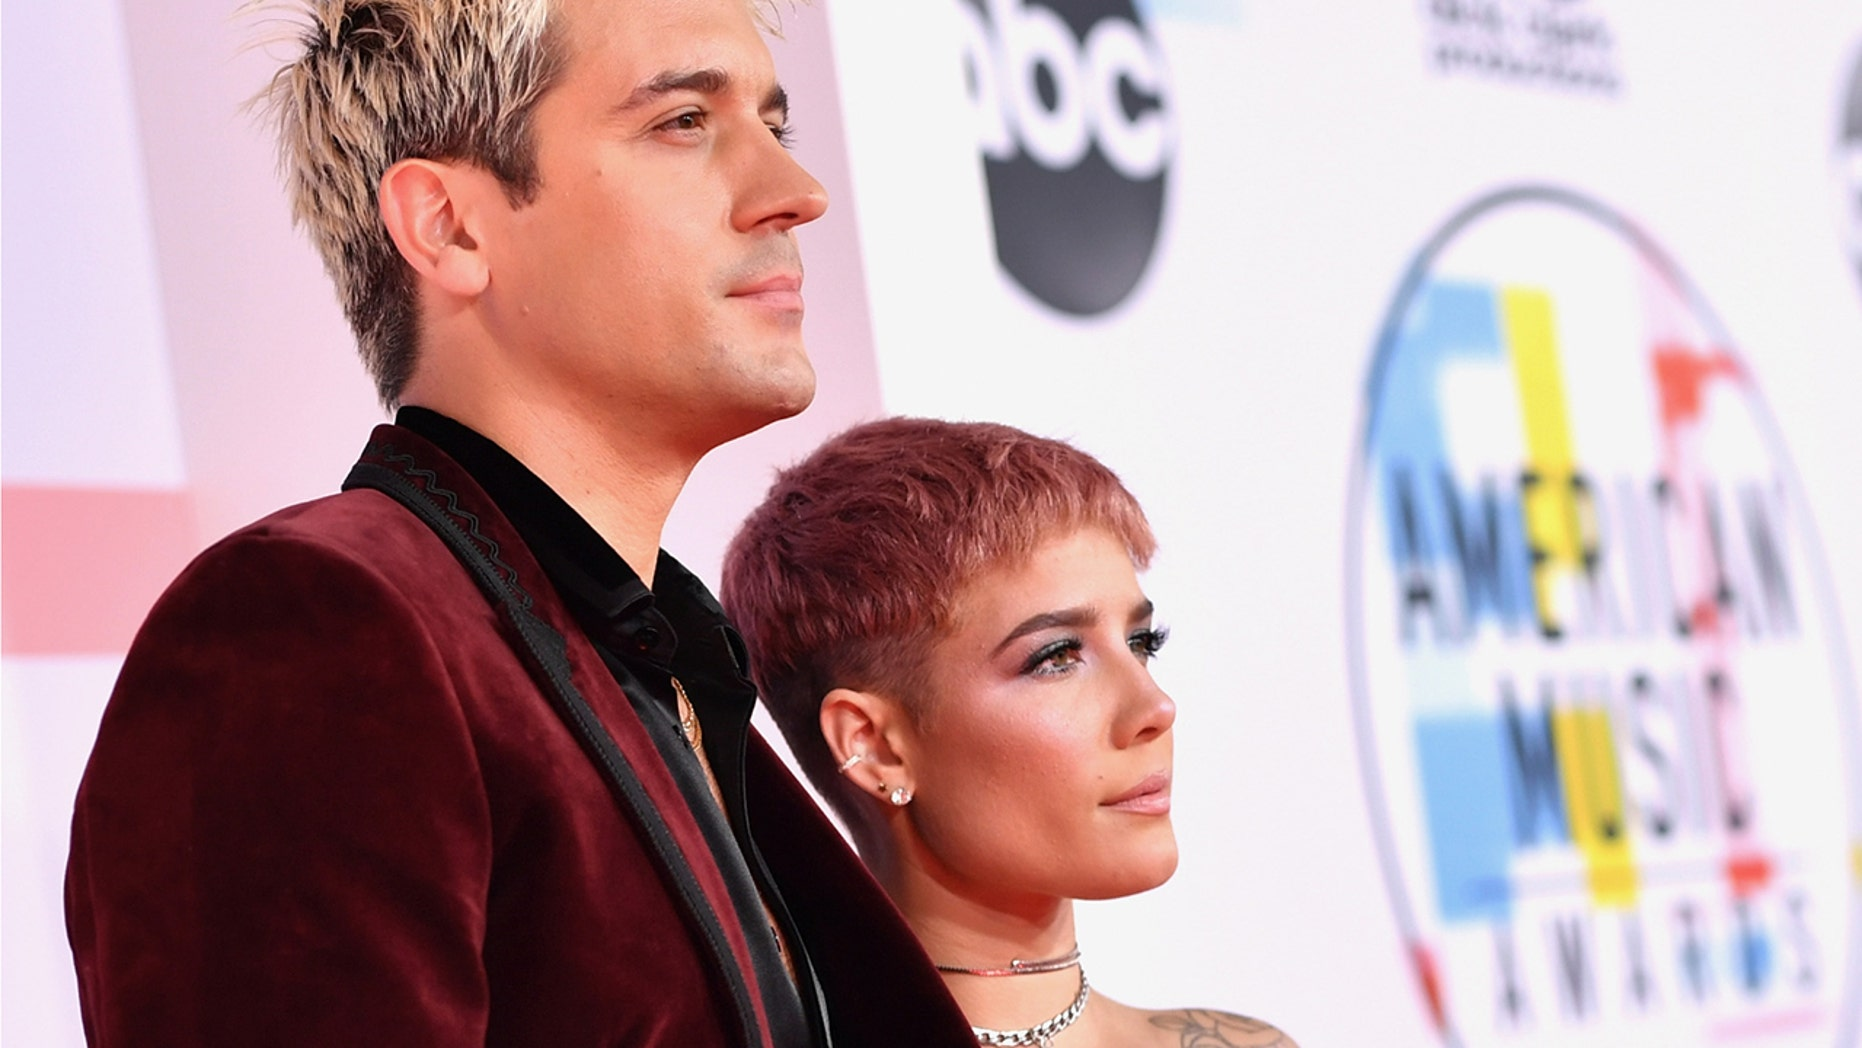 G-Eazy and Halsey, pictured here at the 2018 American Music Awards on October 9 in Los Angeles, Calif., have reportedly called it quits again, according to People.